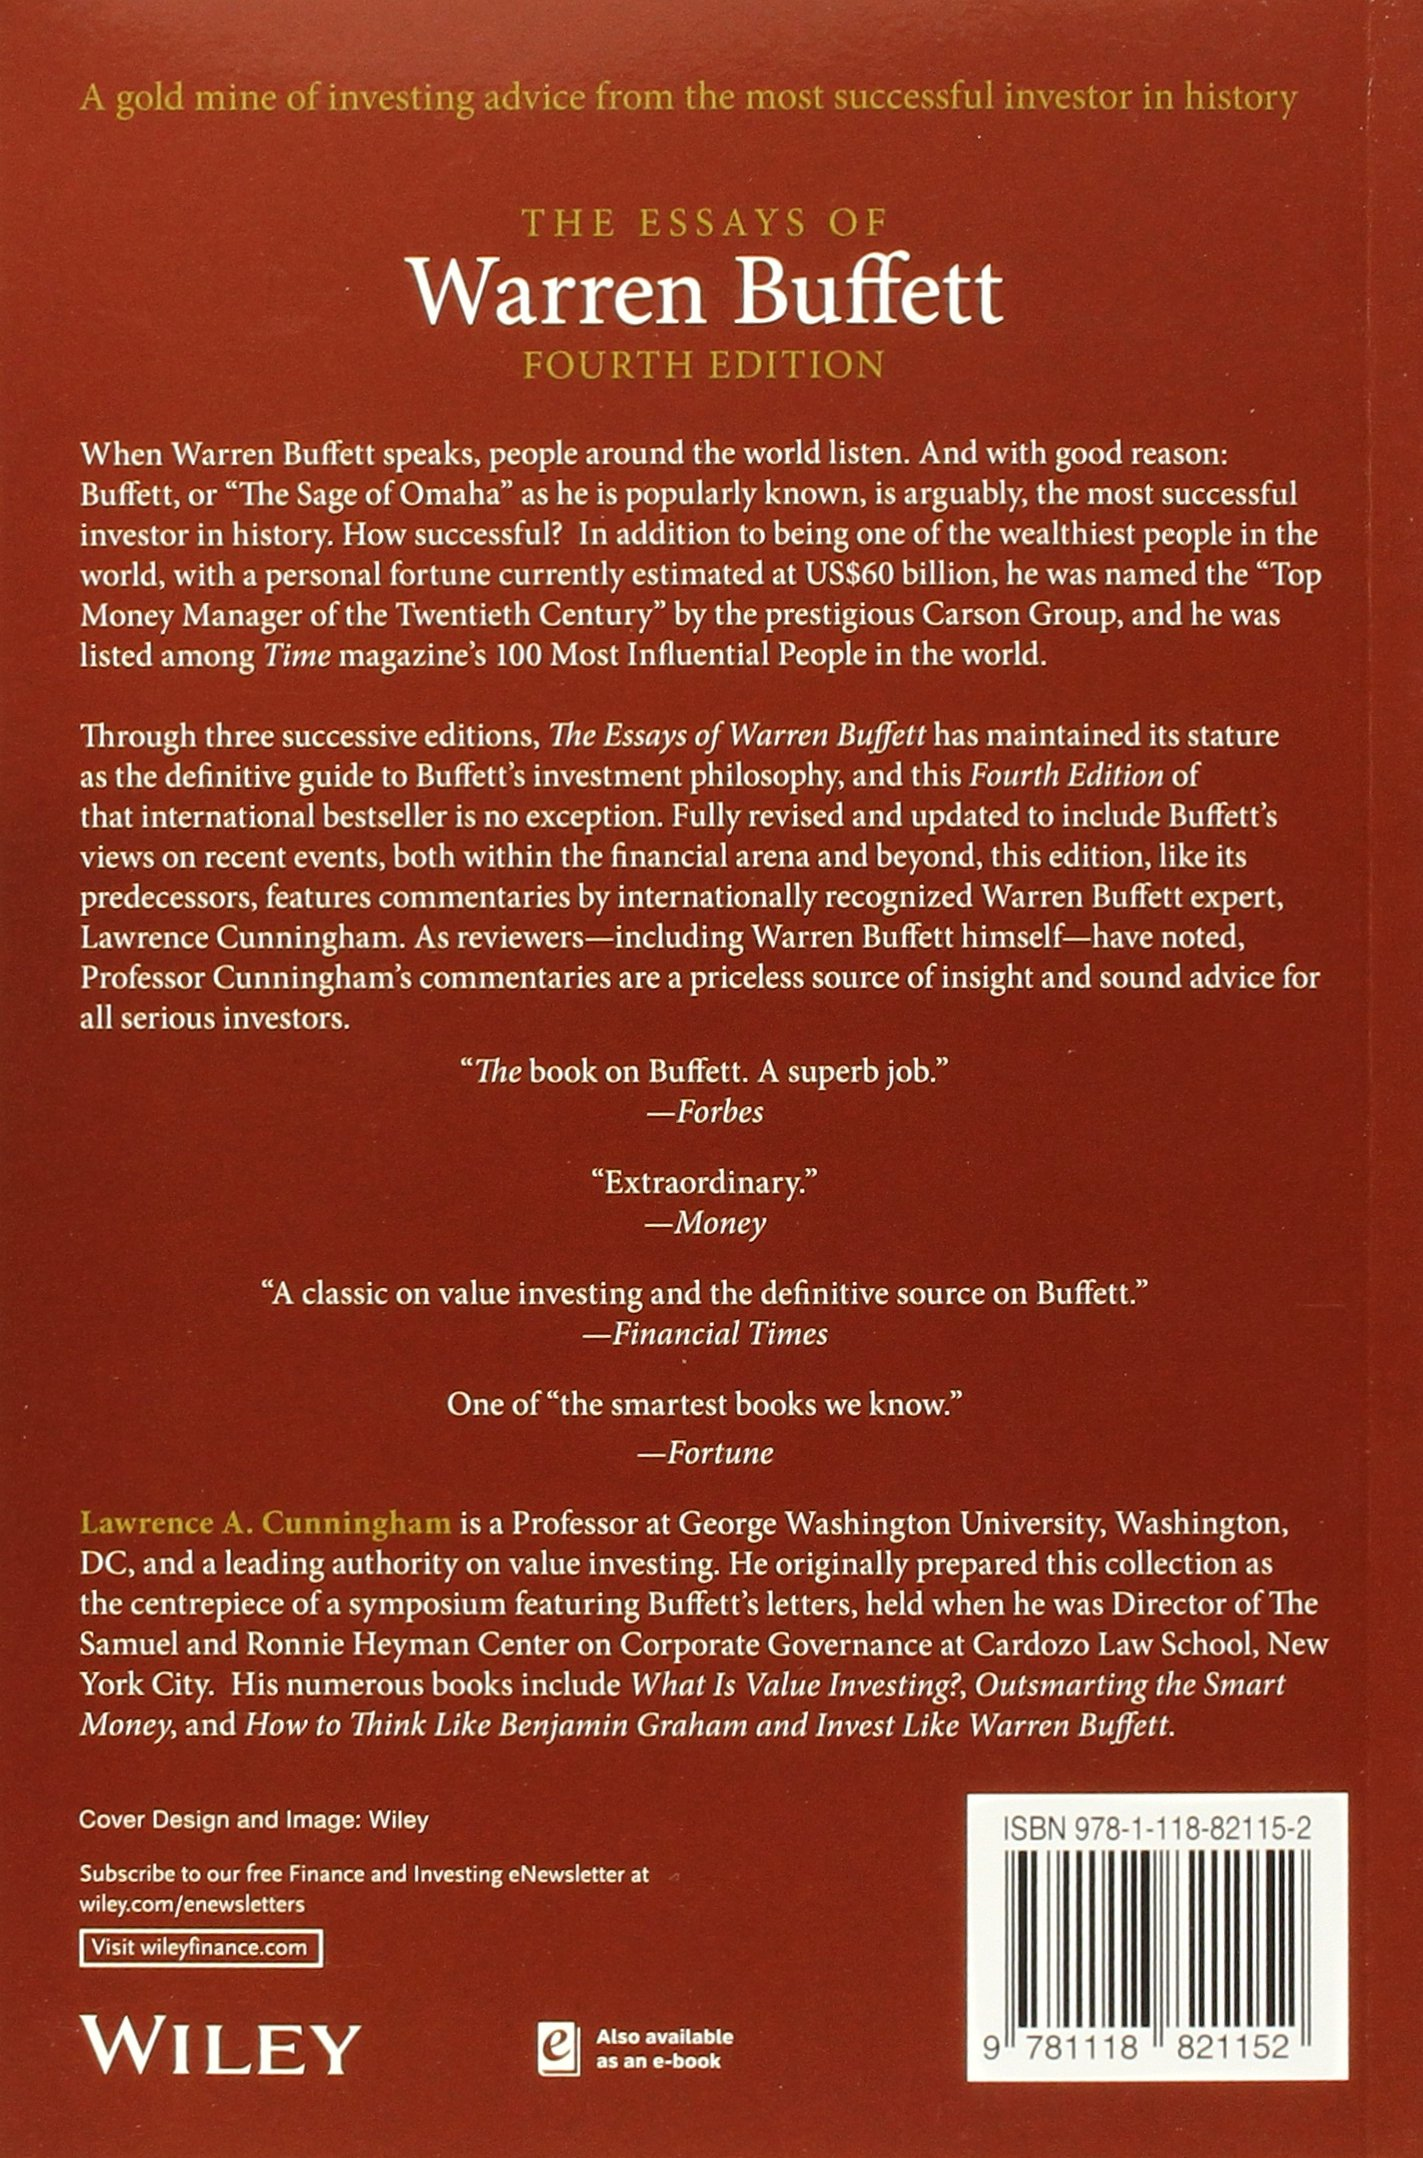 018 Essay Example 91viw96oq0l The Essays Of Warren Buffett Lessons For Corporate Remarkable America Third Edition 3rd Second Pdf Audio Book Full